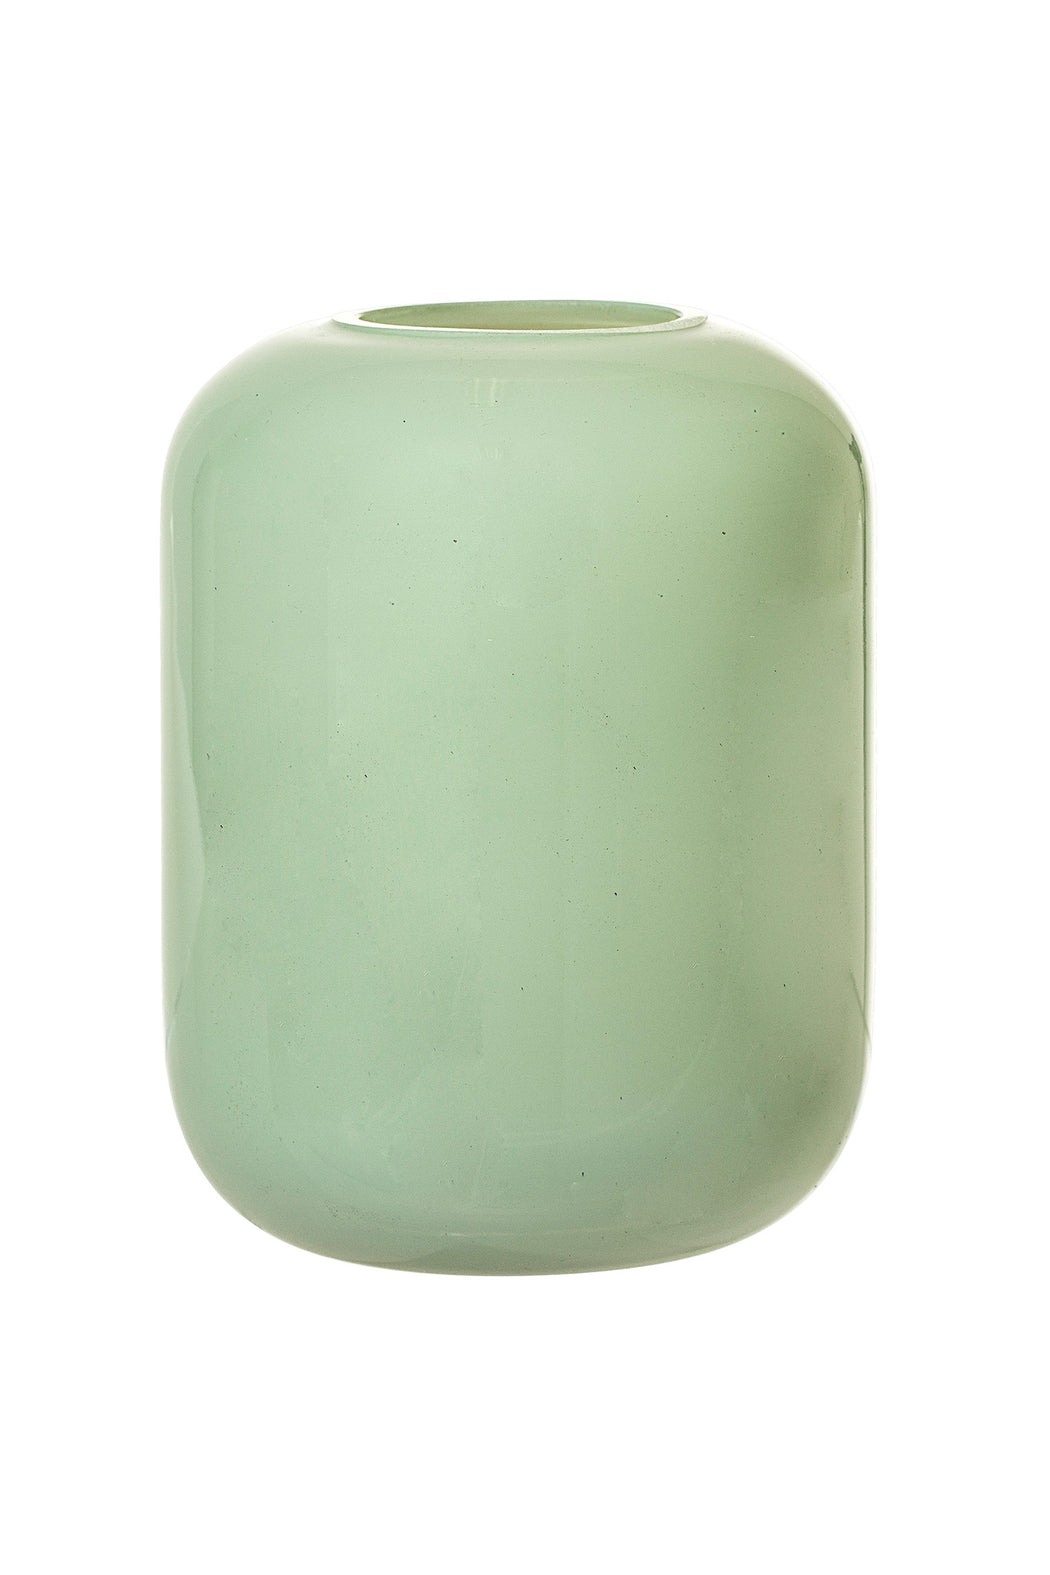 Simple Green Glass Vase, Vase, Bloomingville - 3LittlePicks